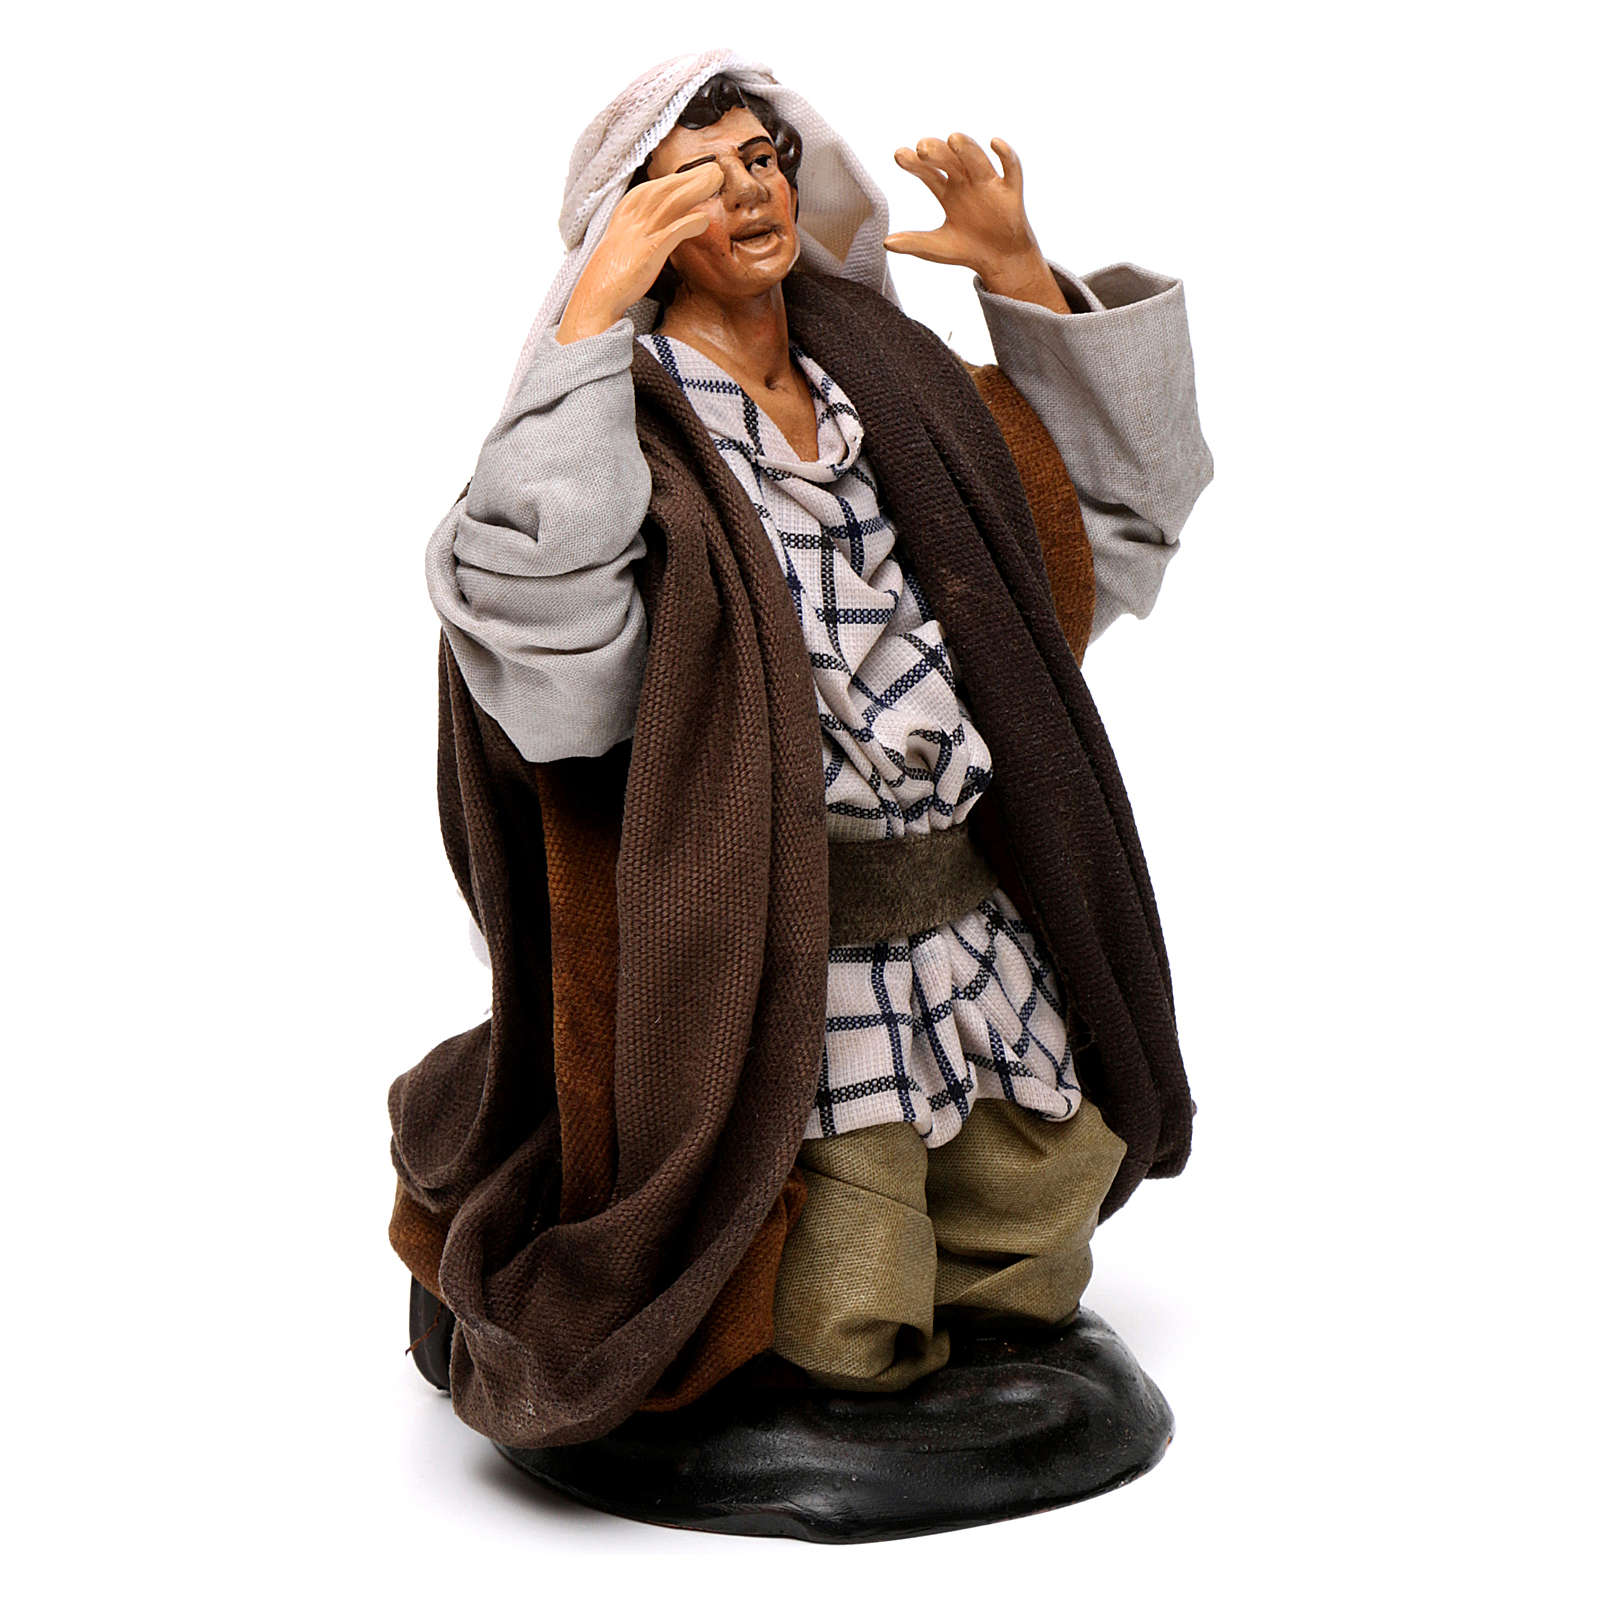 Neapolitan nativity figurine, kneeling man 18cm 4